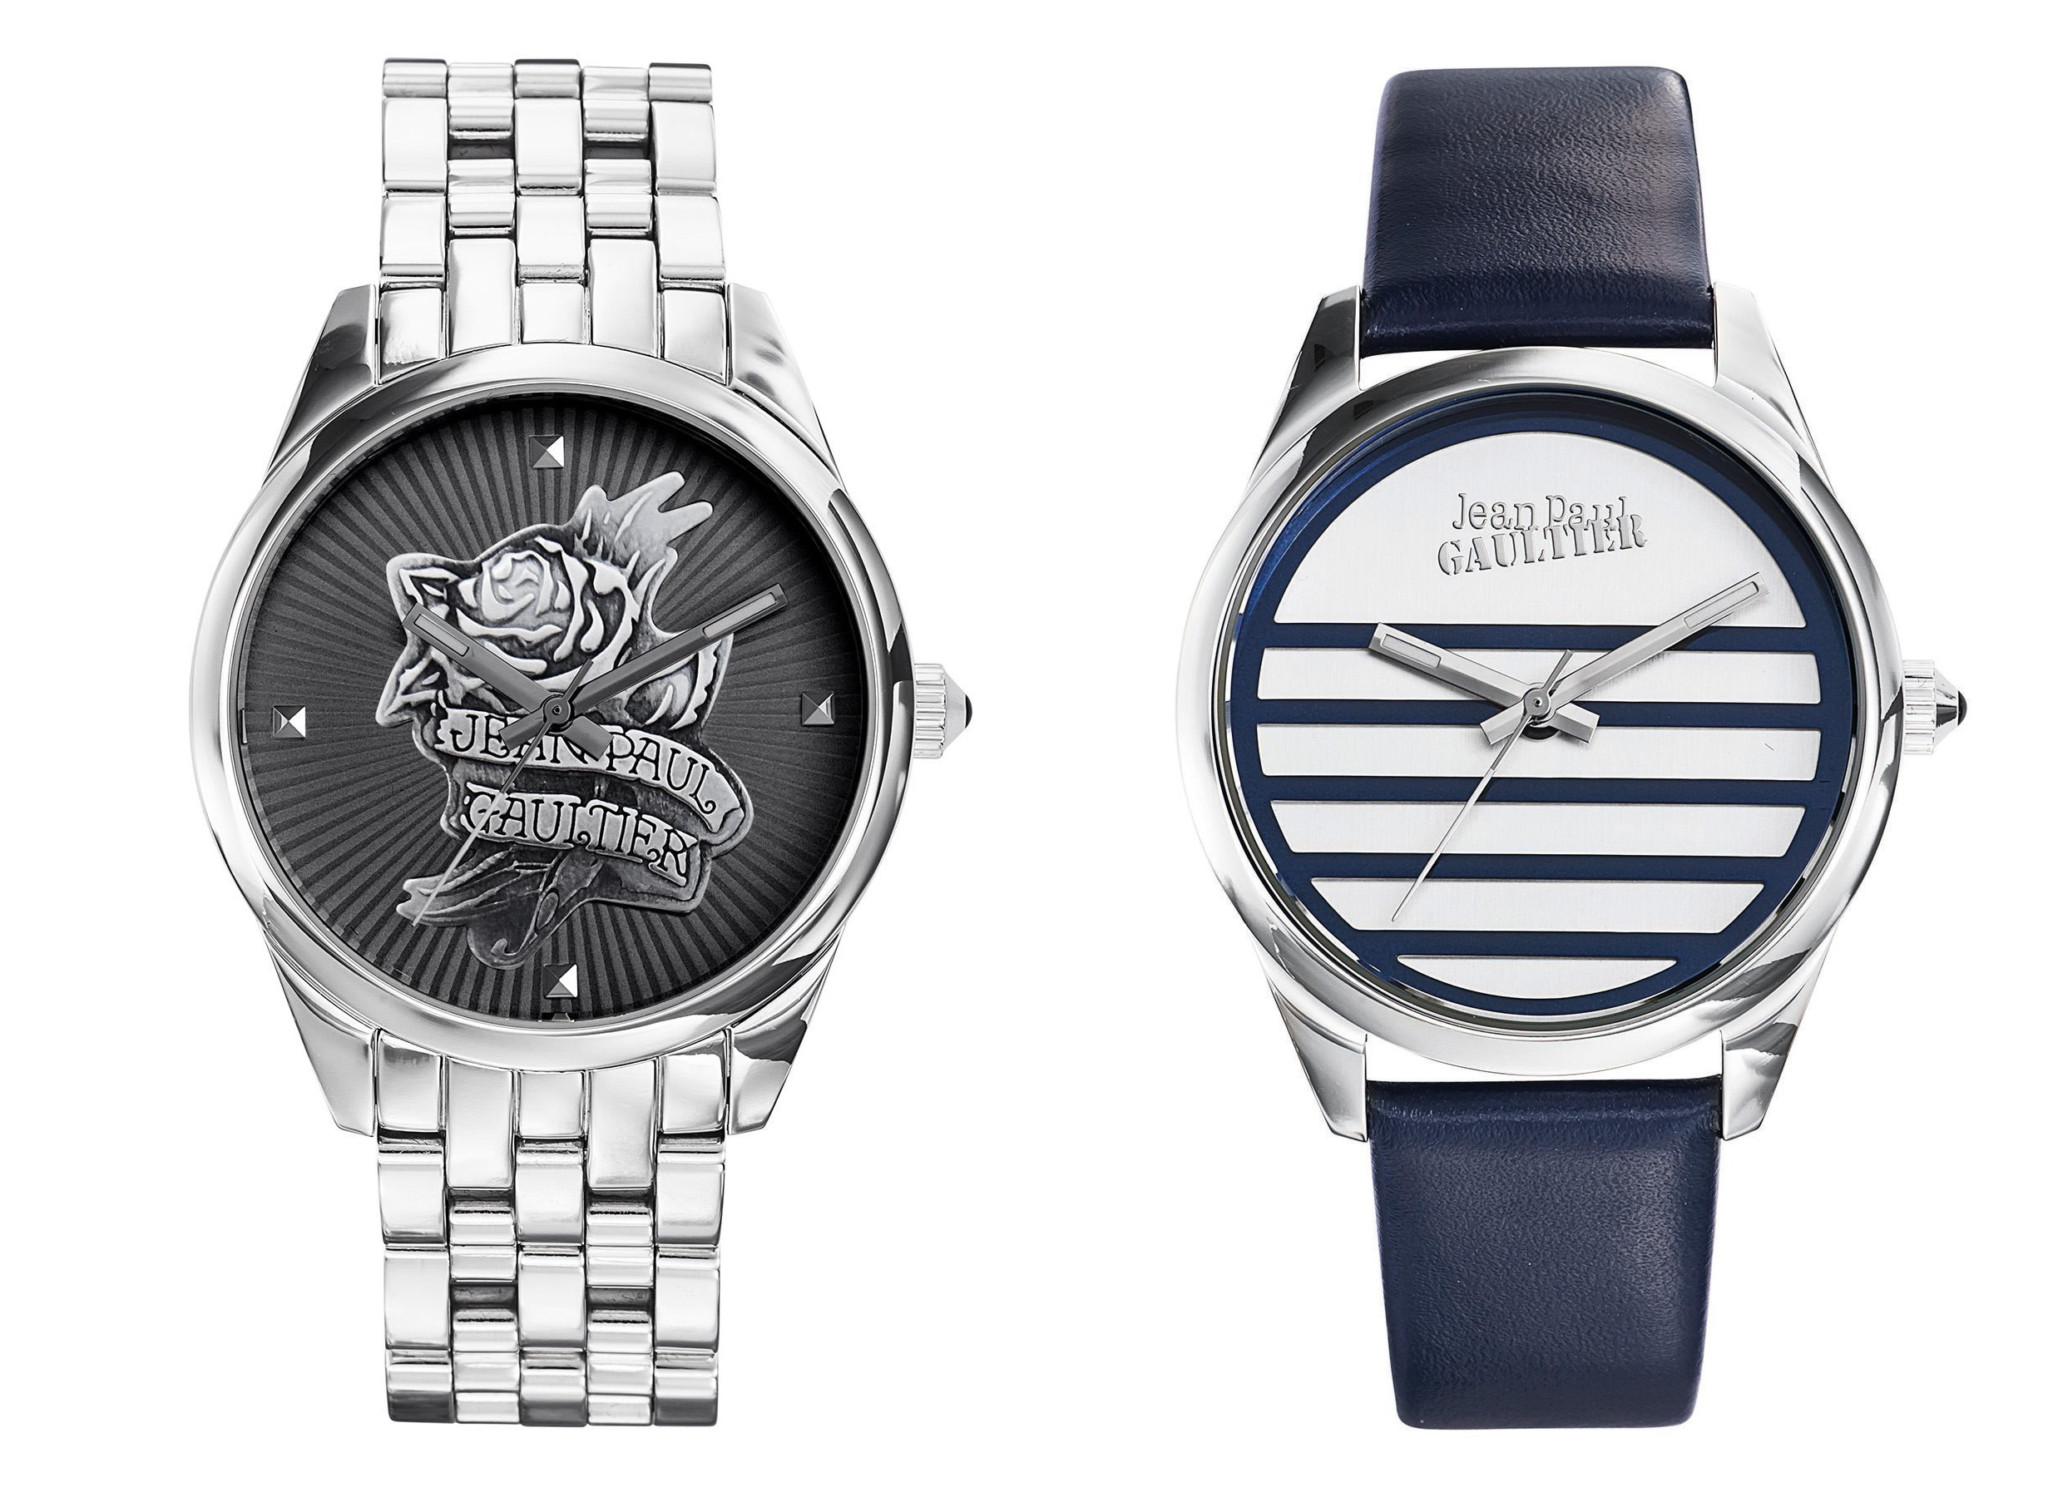 Jean Paul Gaultier watches top